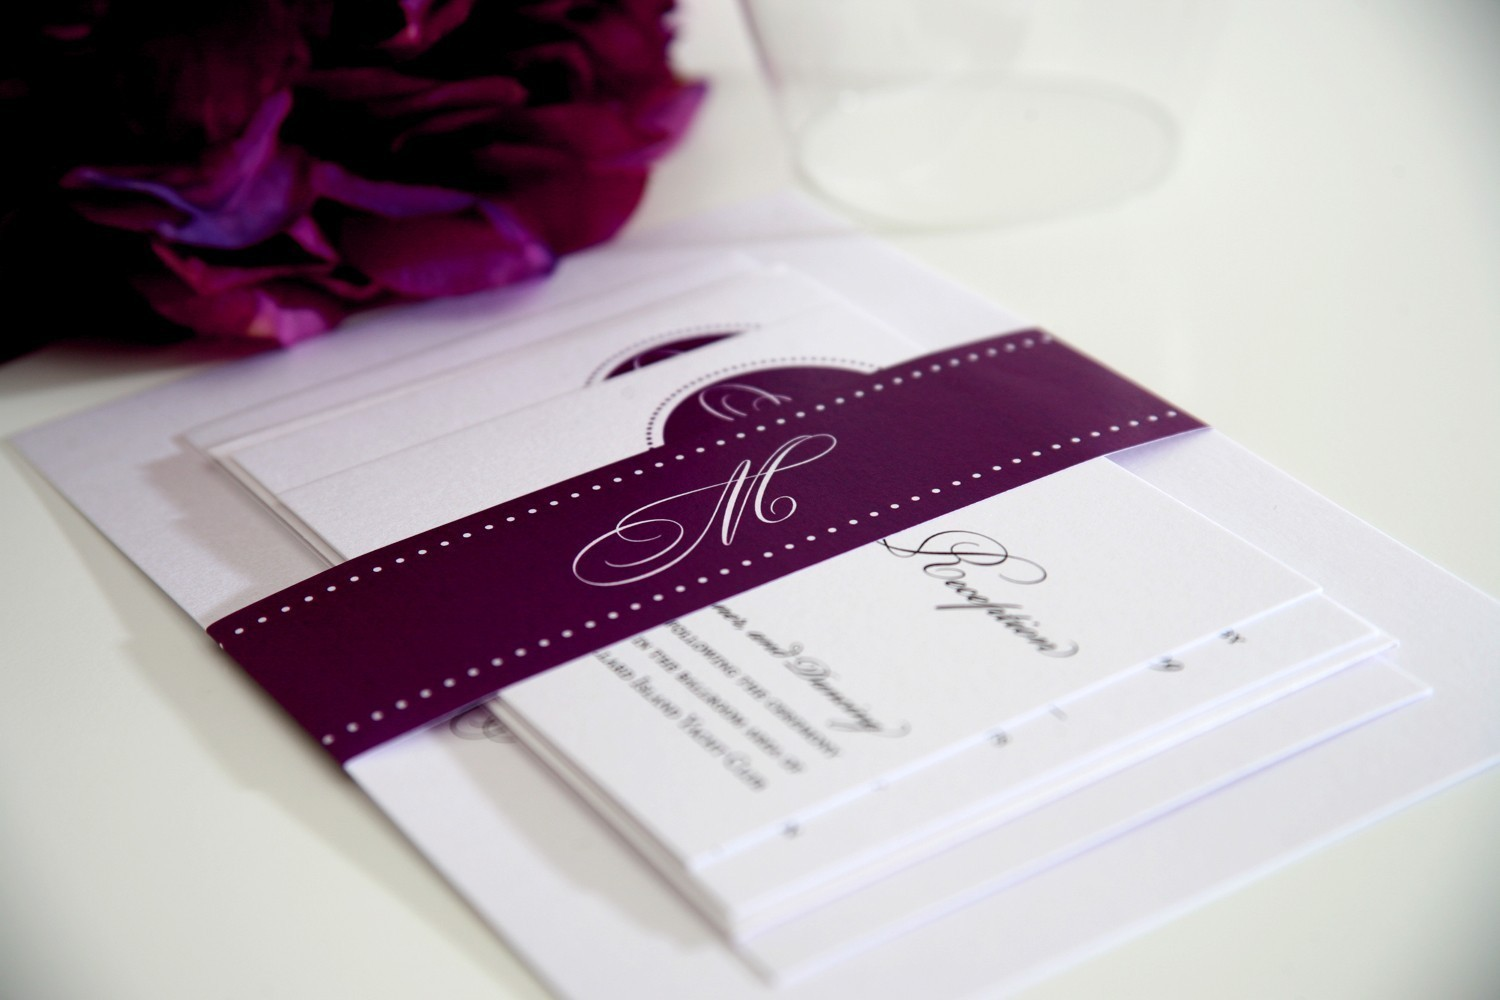 Cheap wedding invitations wedding ideas cheap wedding invitations solutioingenieria Choice Image